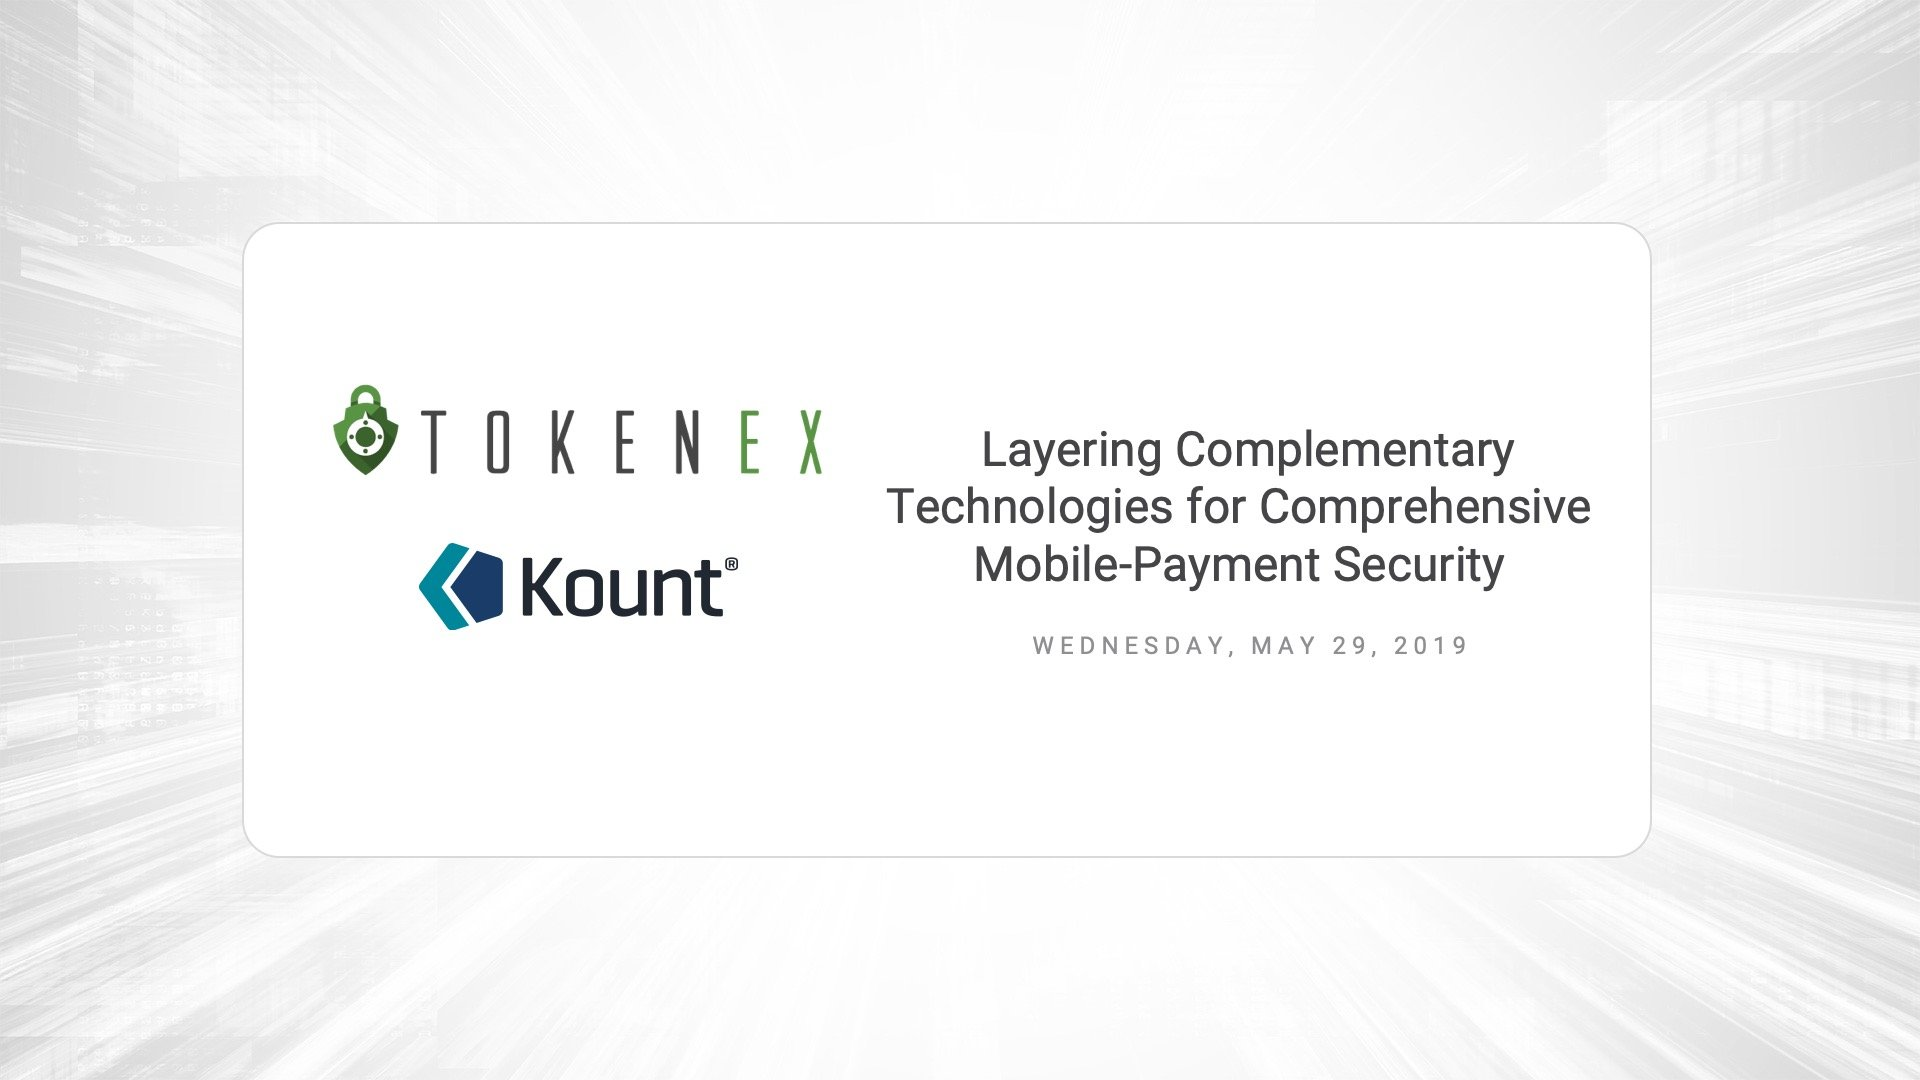 Layering Complementary Technologies for Comprehensive Mobile Payment Security